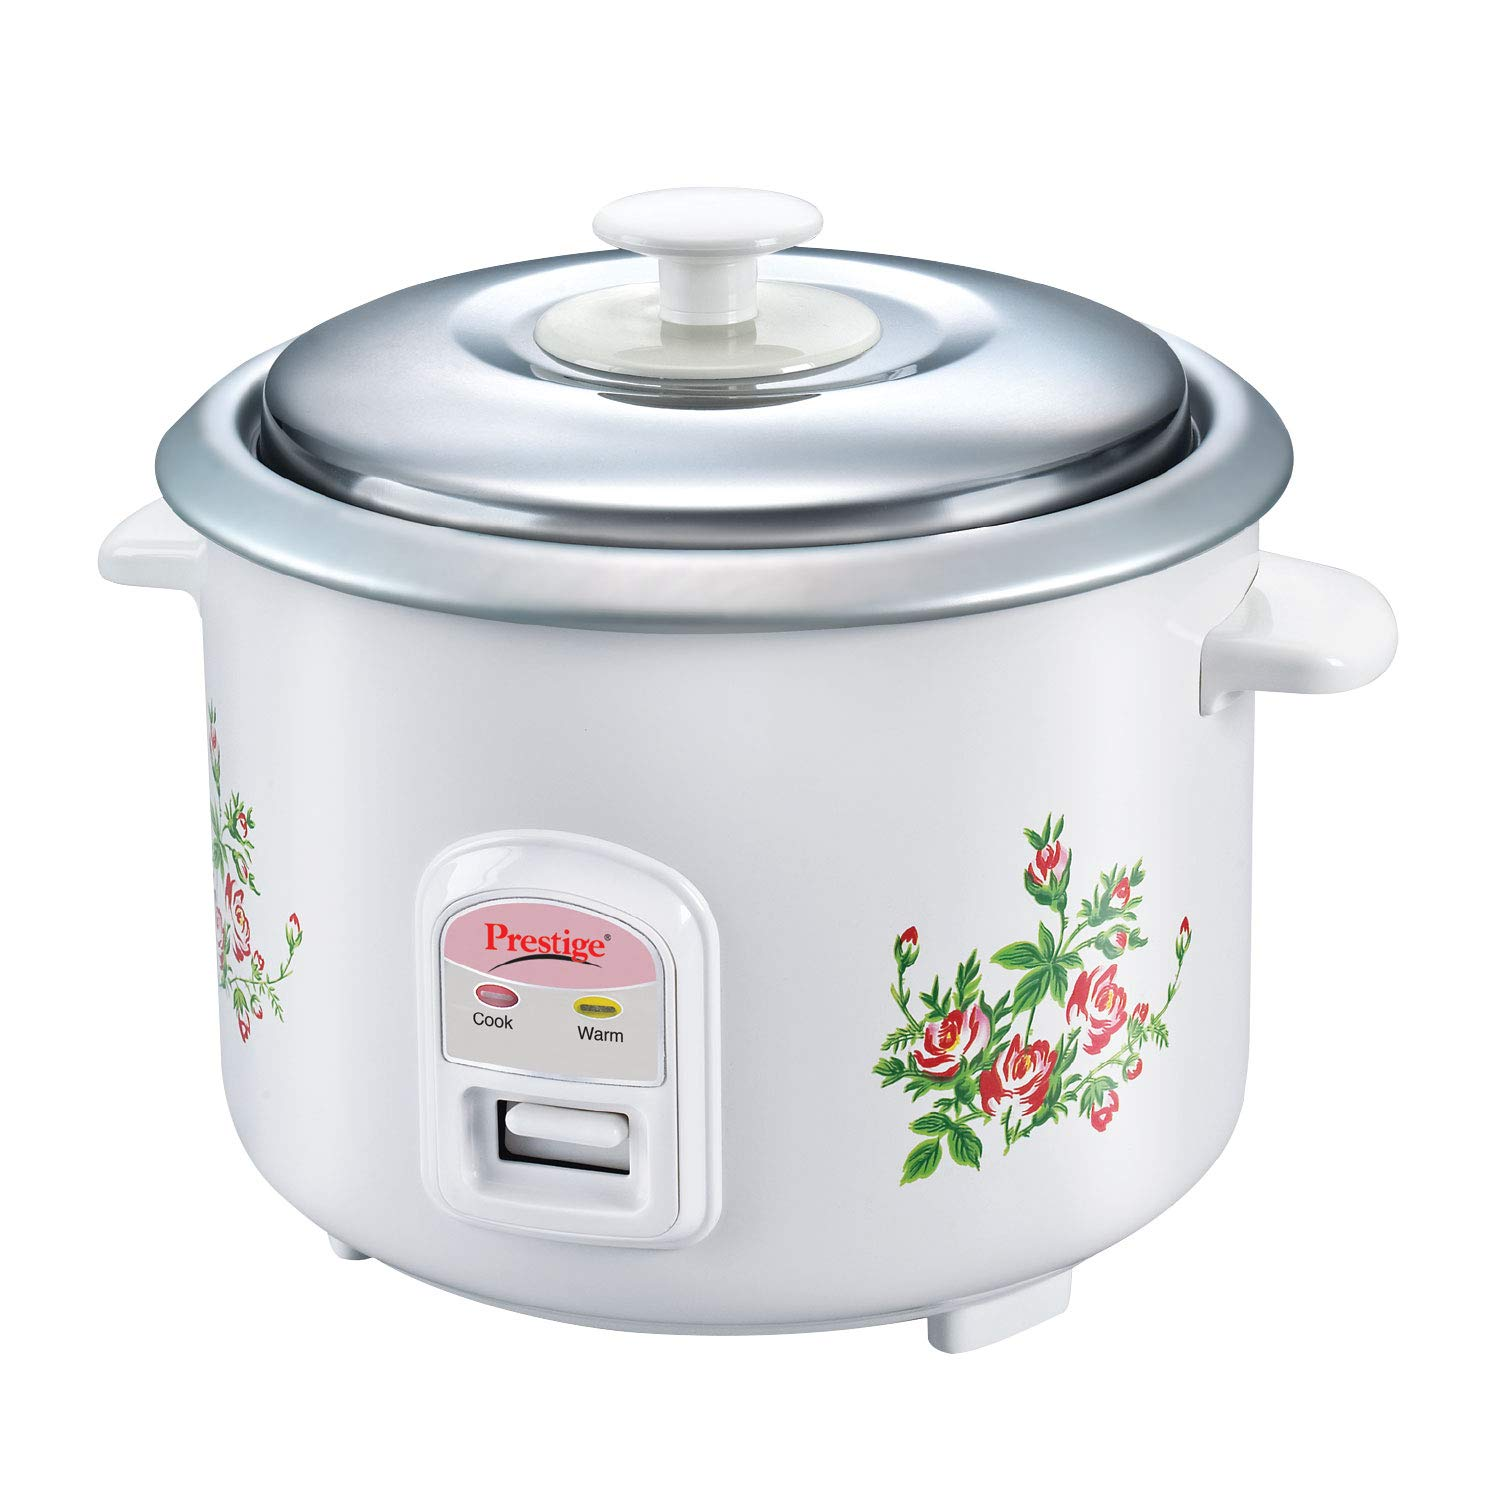 Buy Prestige PRWO 1.4-2 500-Watt Electric Rice Cooker Online at Low Prices  in India - Amazon.in